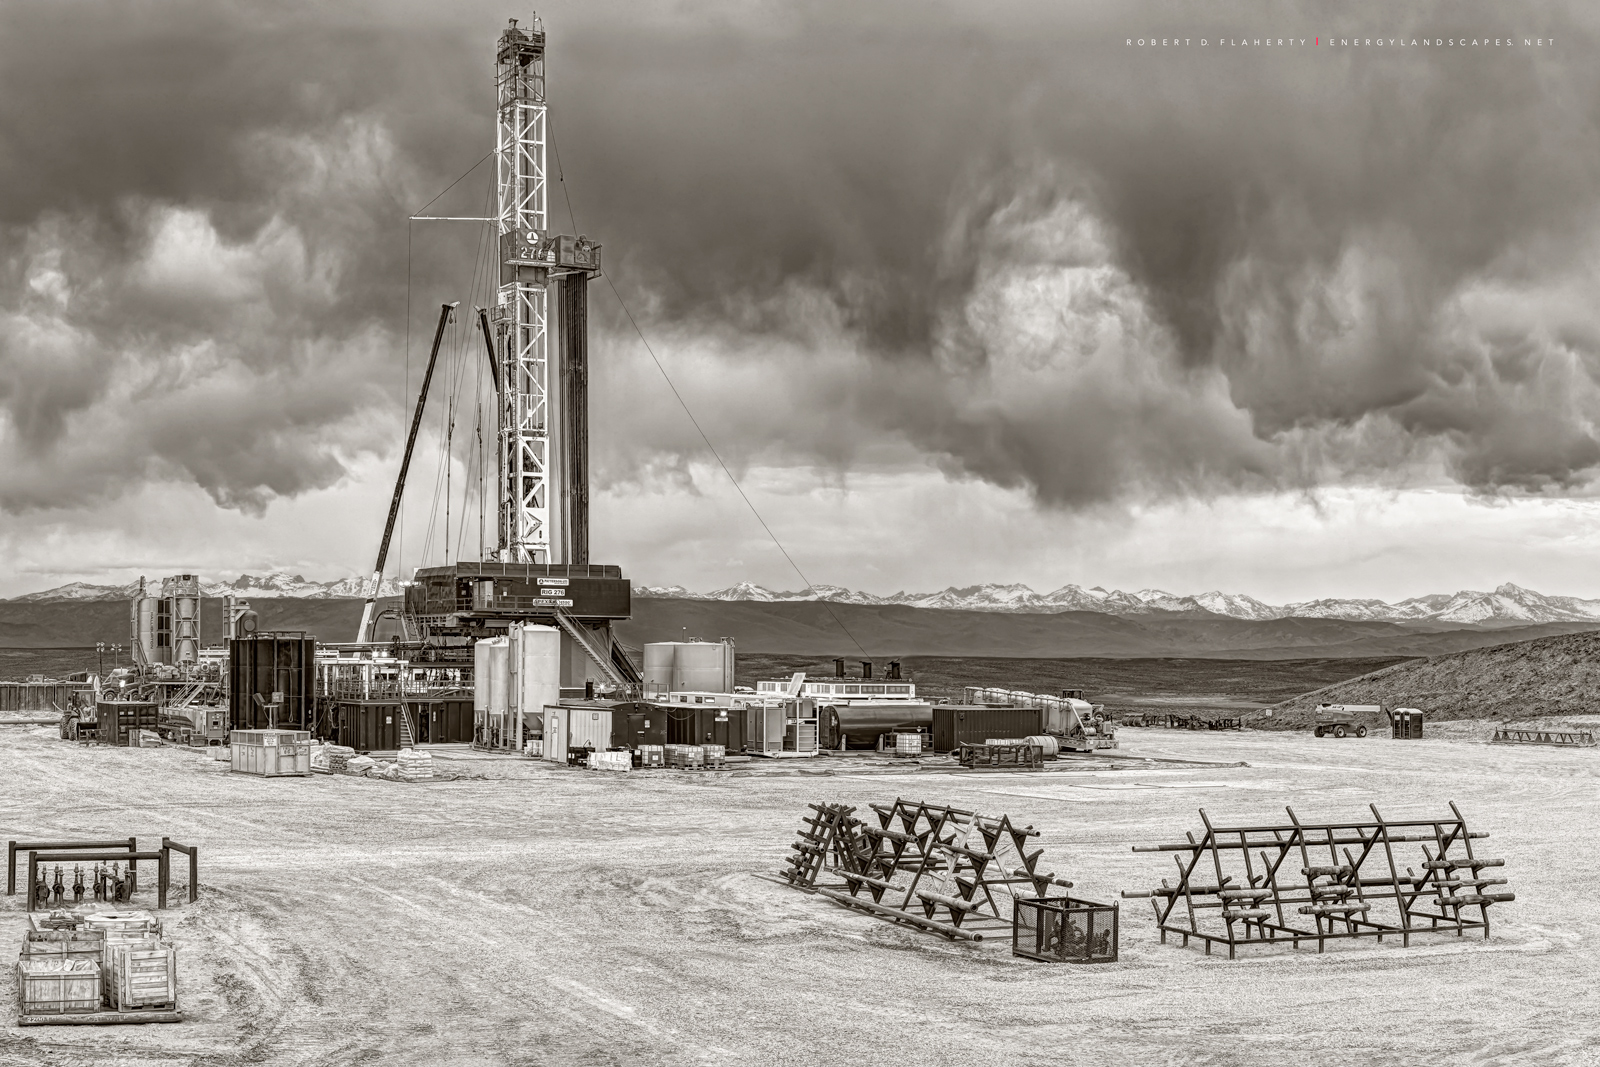 drilling rig, Patterson UTI, Wyoming, Boulder Wyoming, Fall, mountains, fine art oil & gas photography, photo